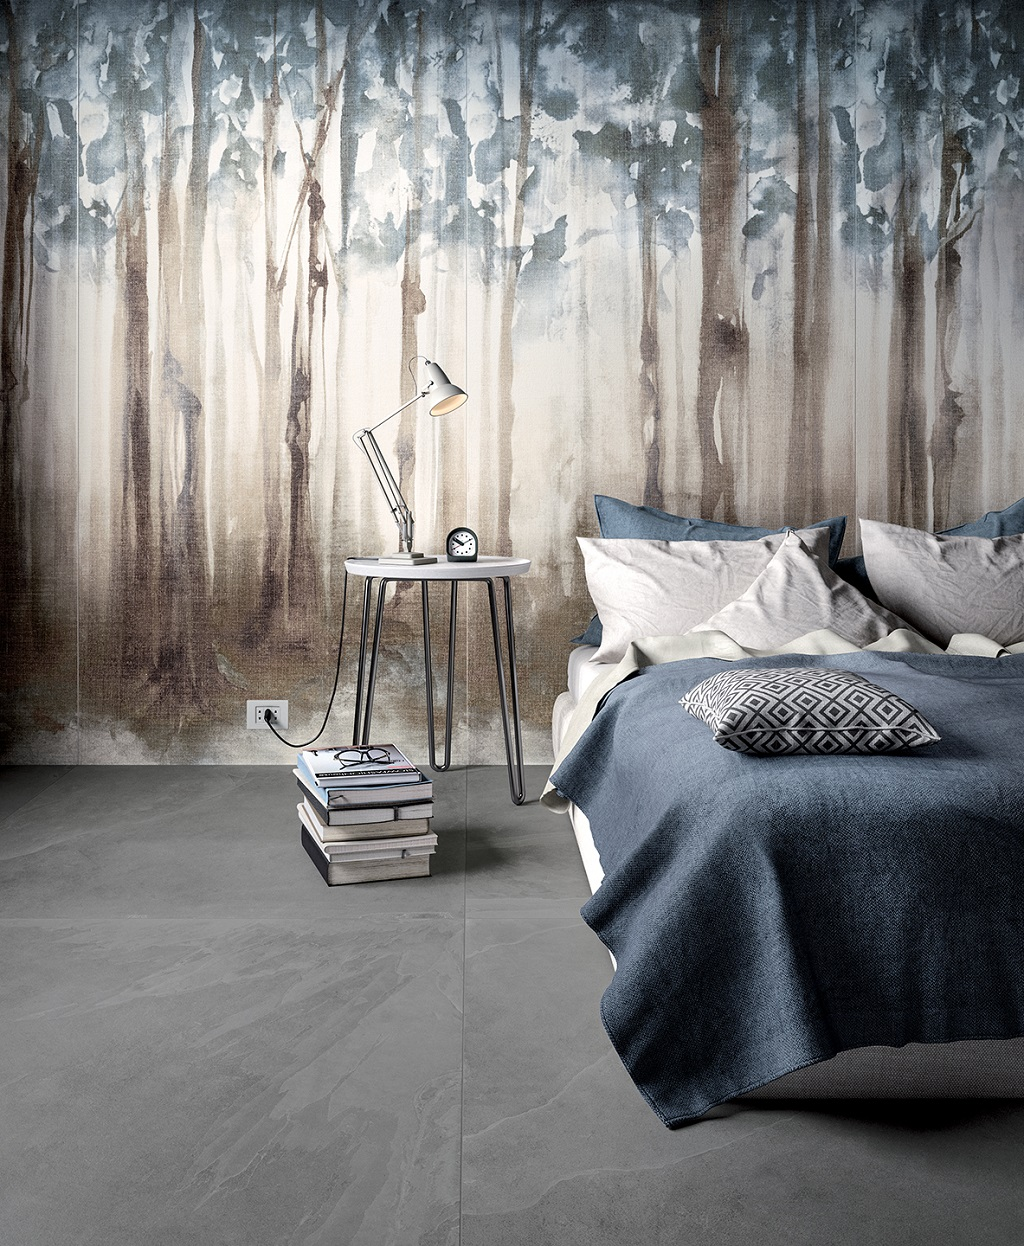 Fondovalle dream wood ceramir.ru